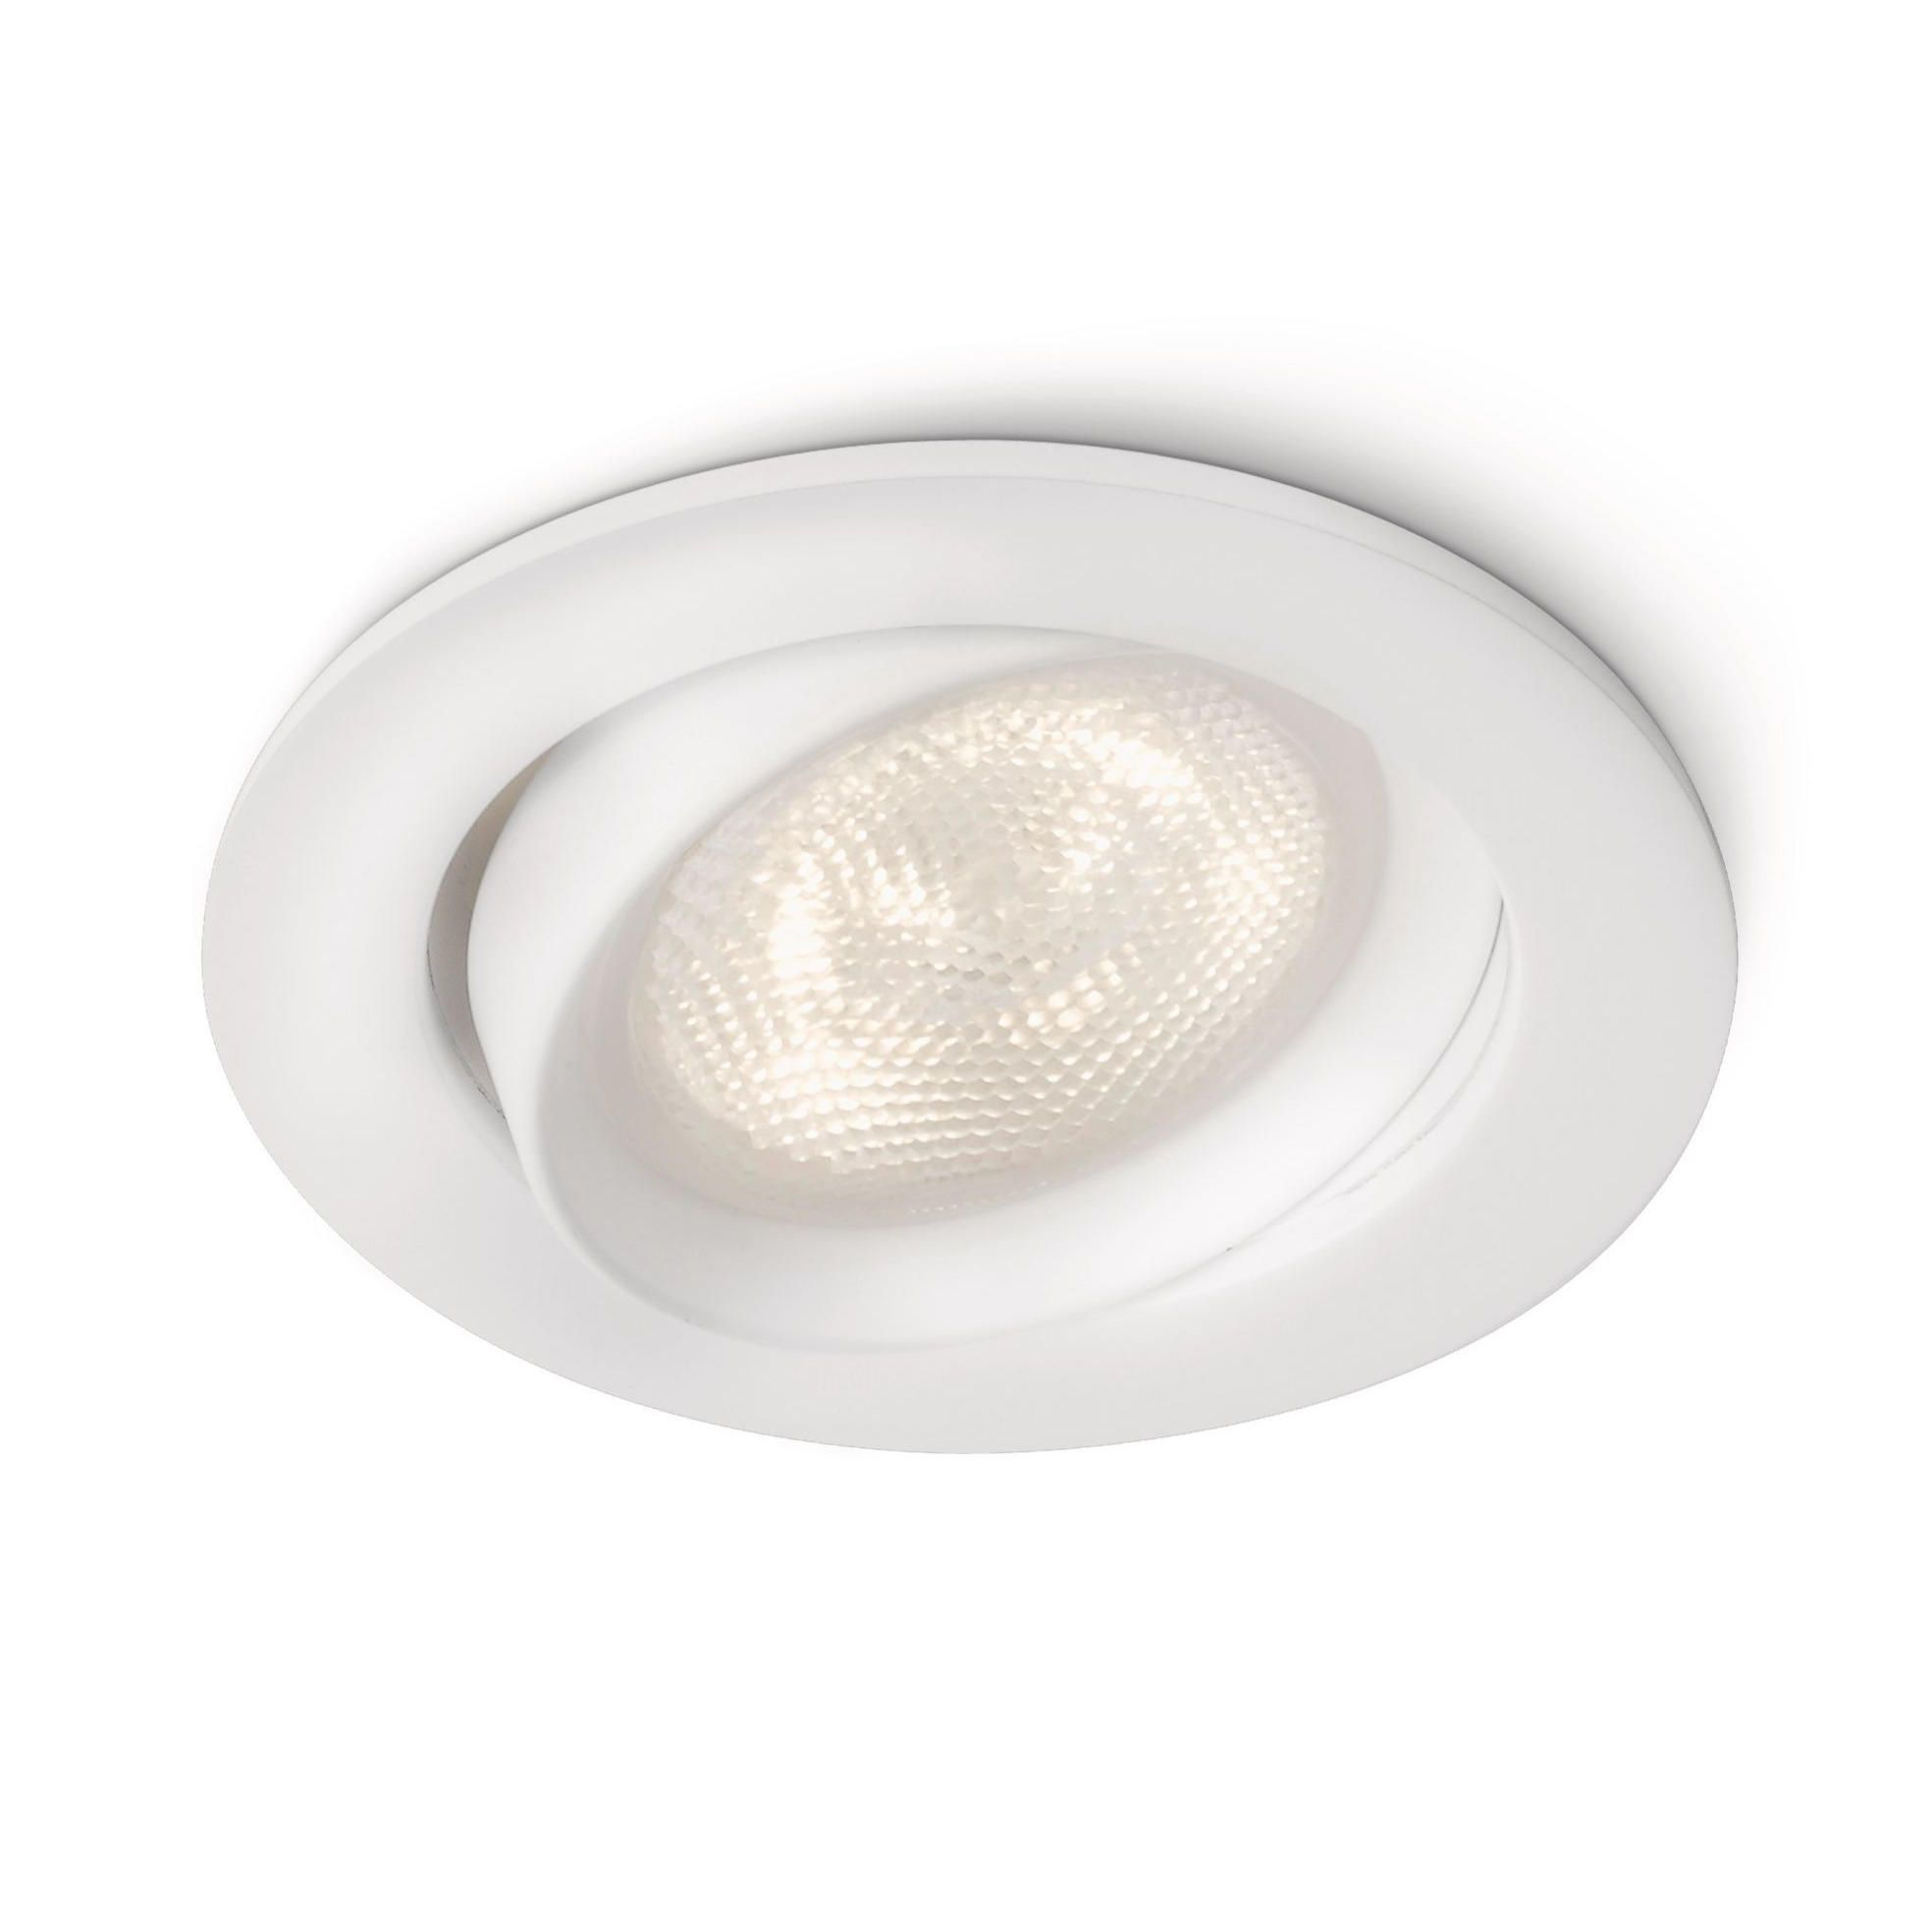 buy cheap led recessed lighting compare lighting prices for best uk